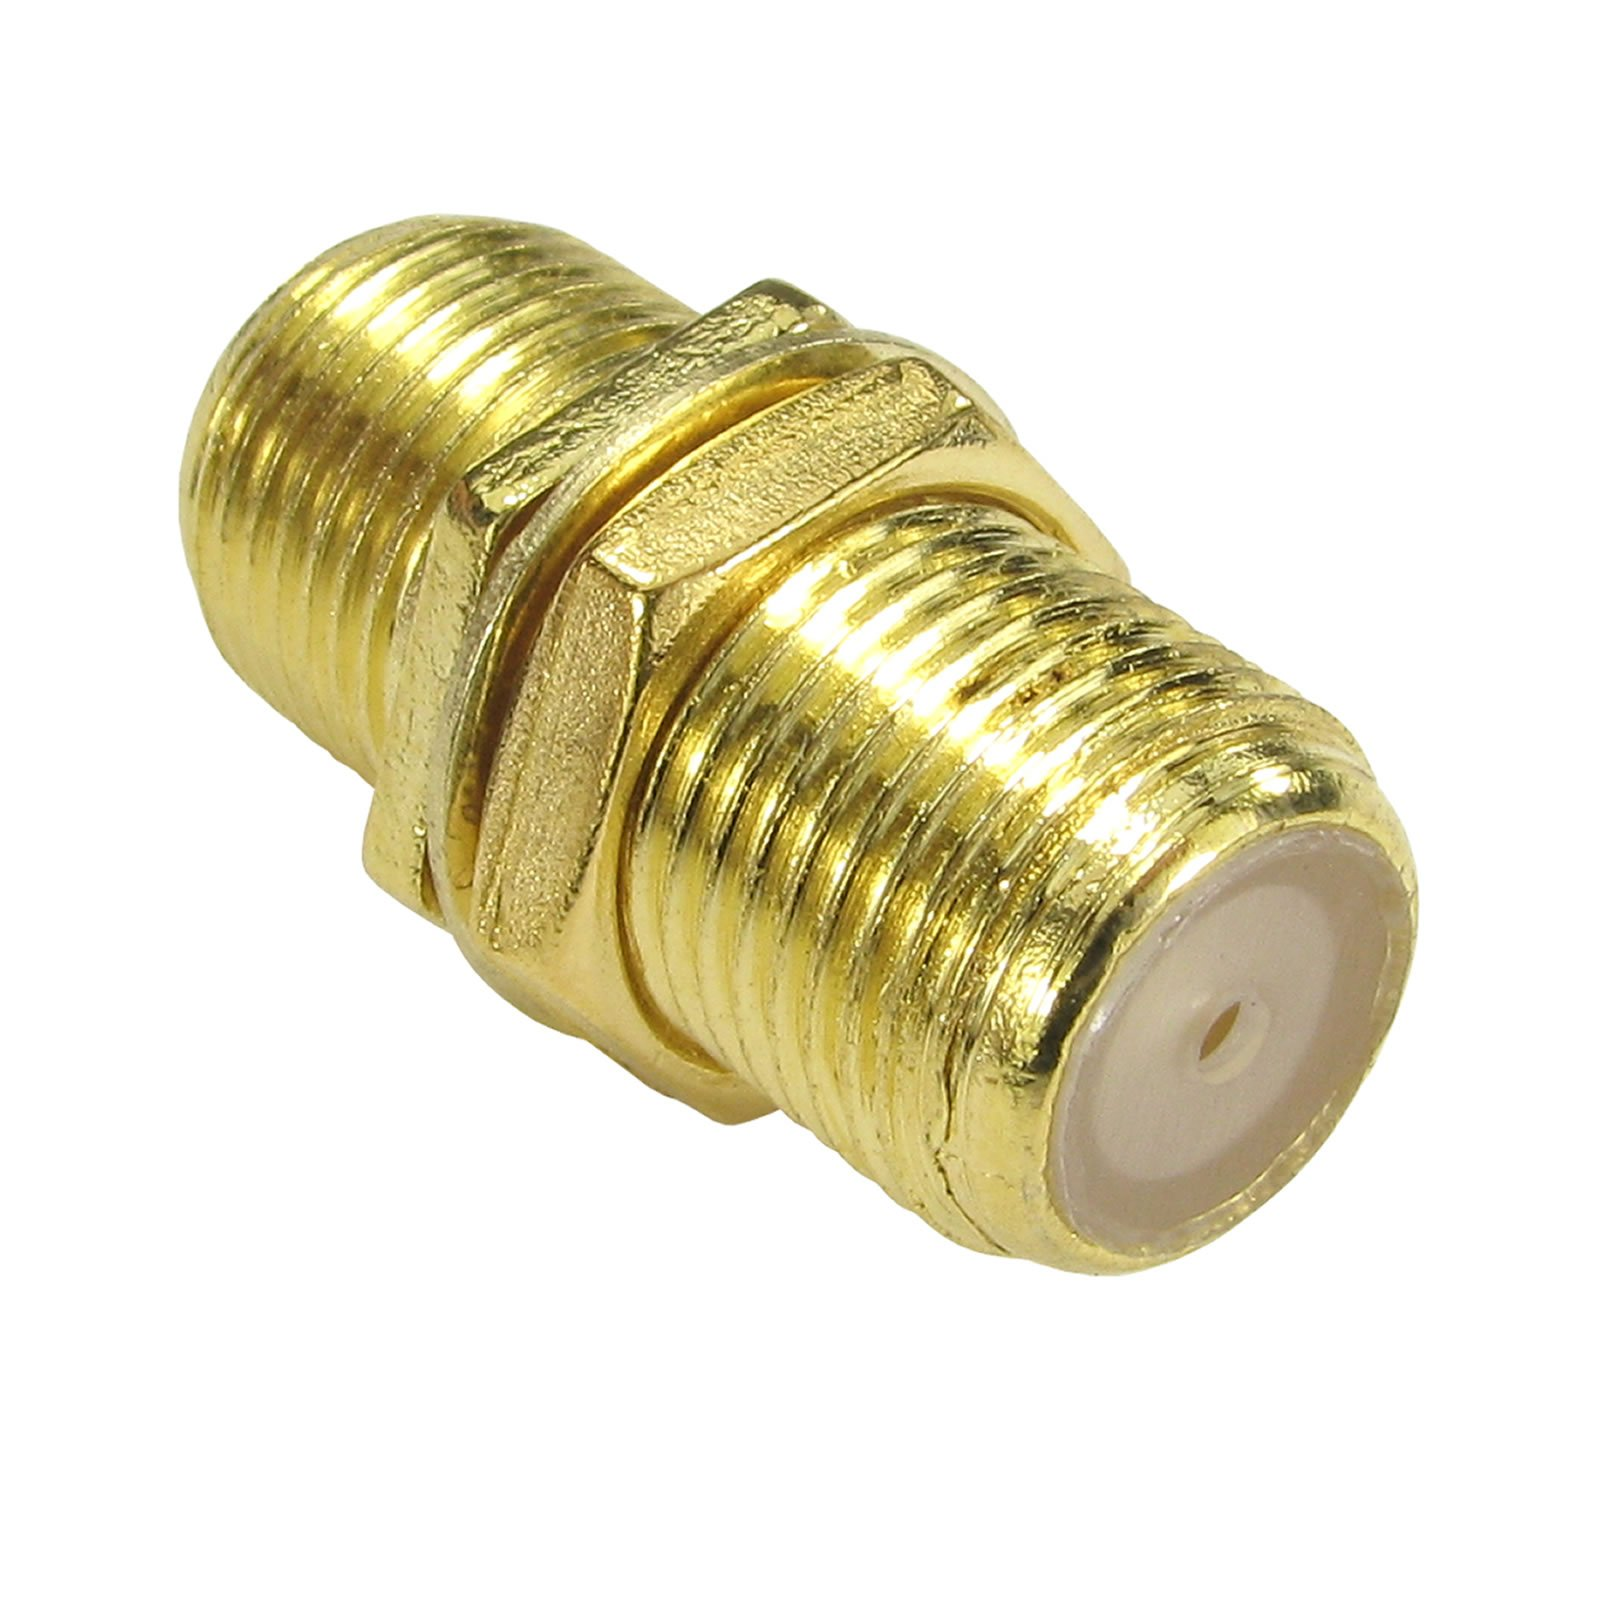 Kenable F Type Connector Coupler Join Satellite Cables with Nut Gold